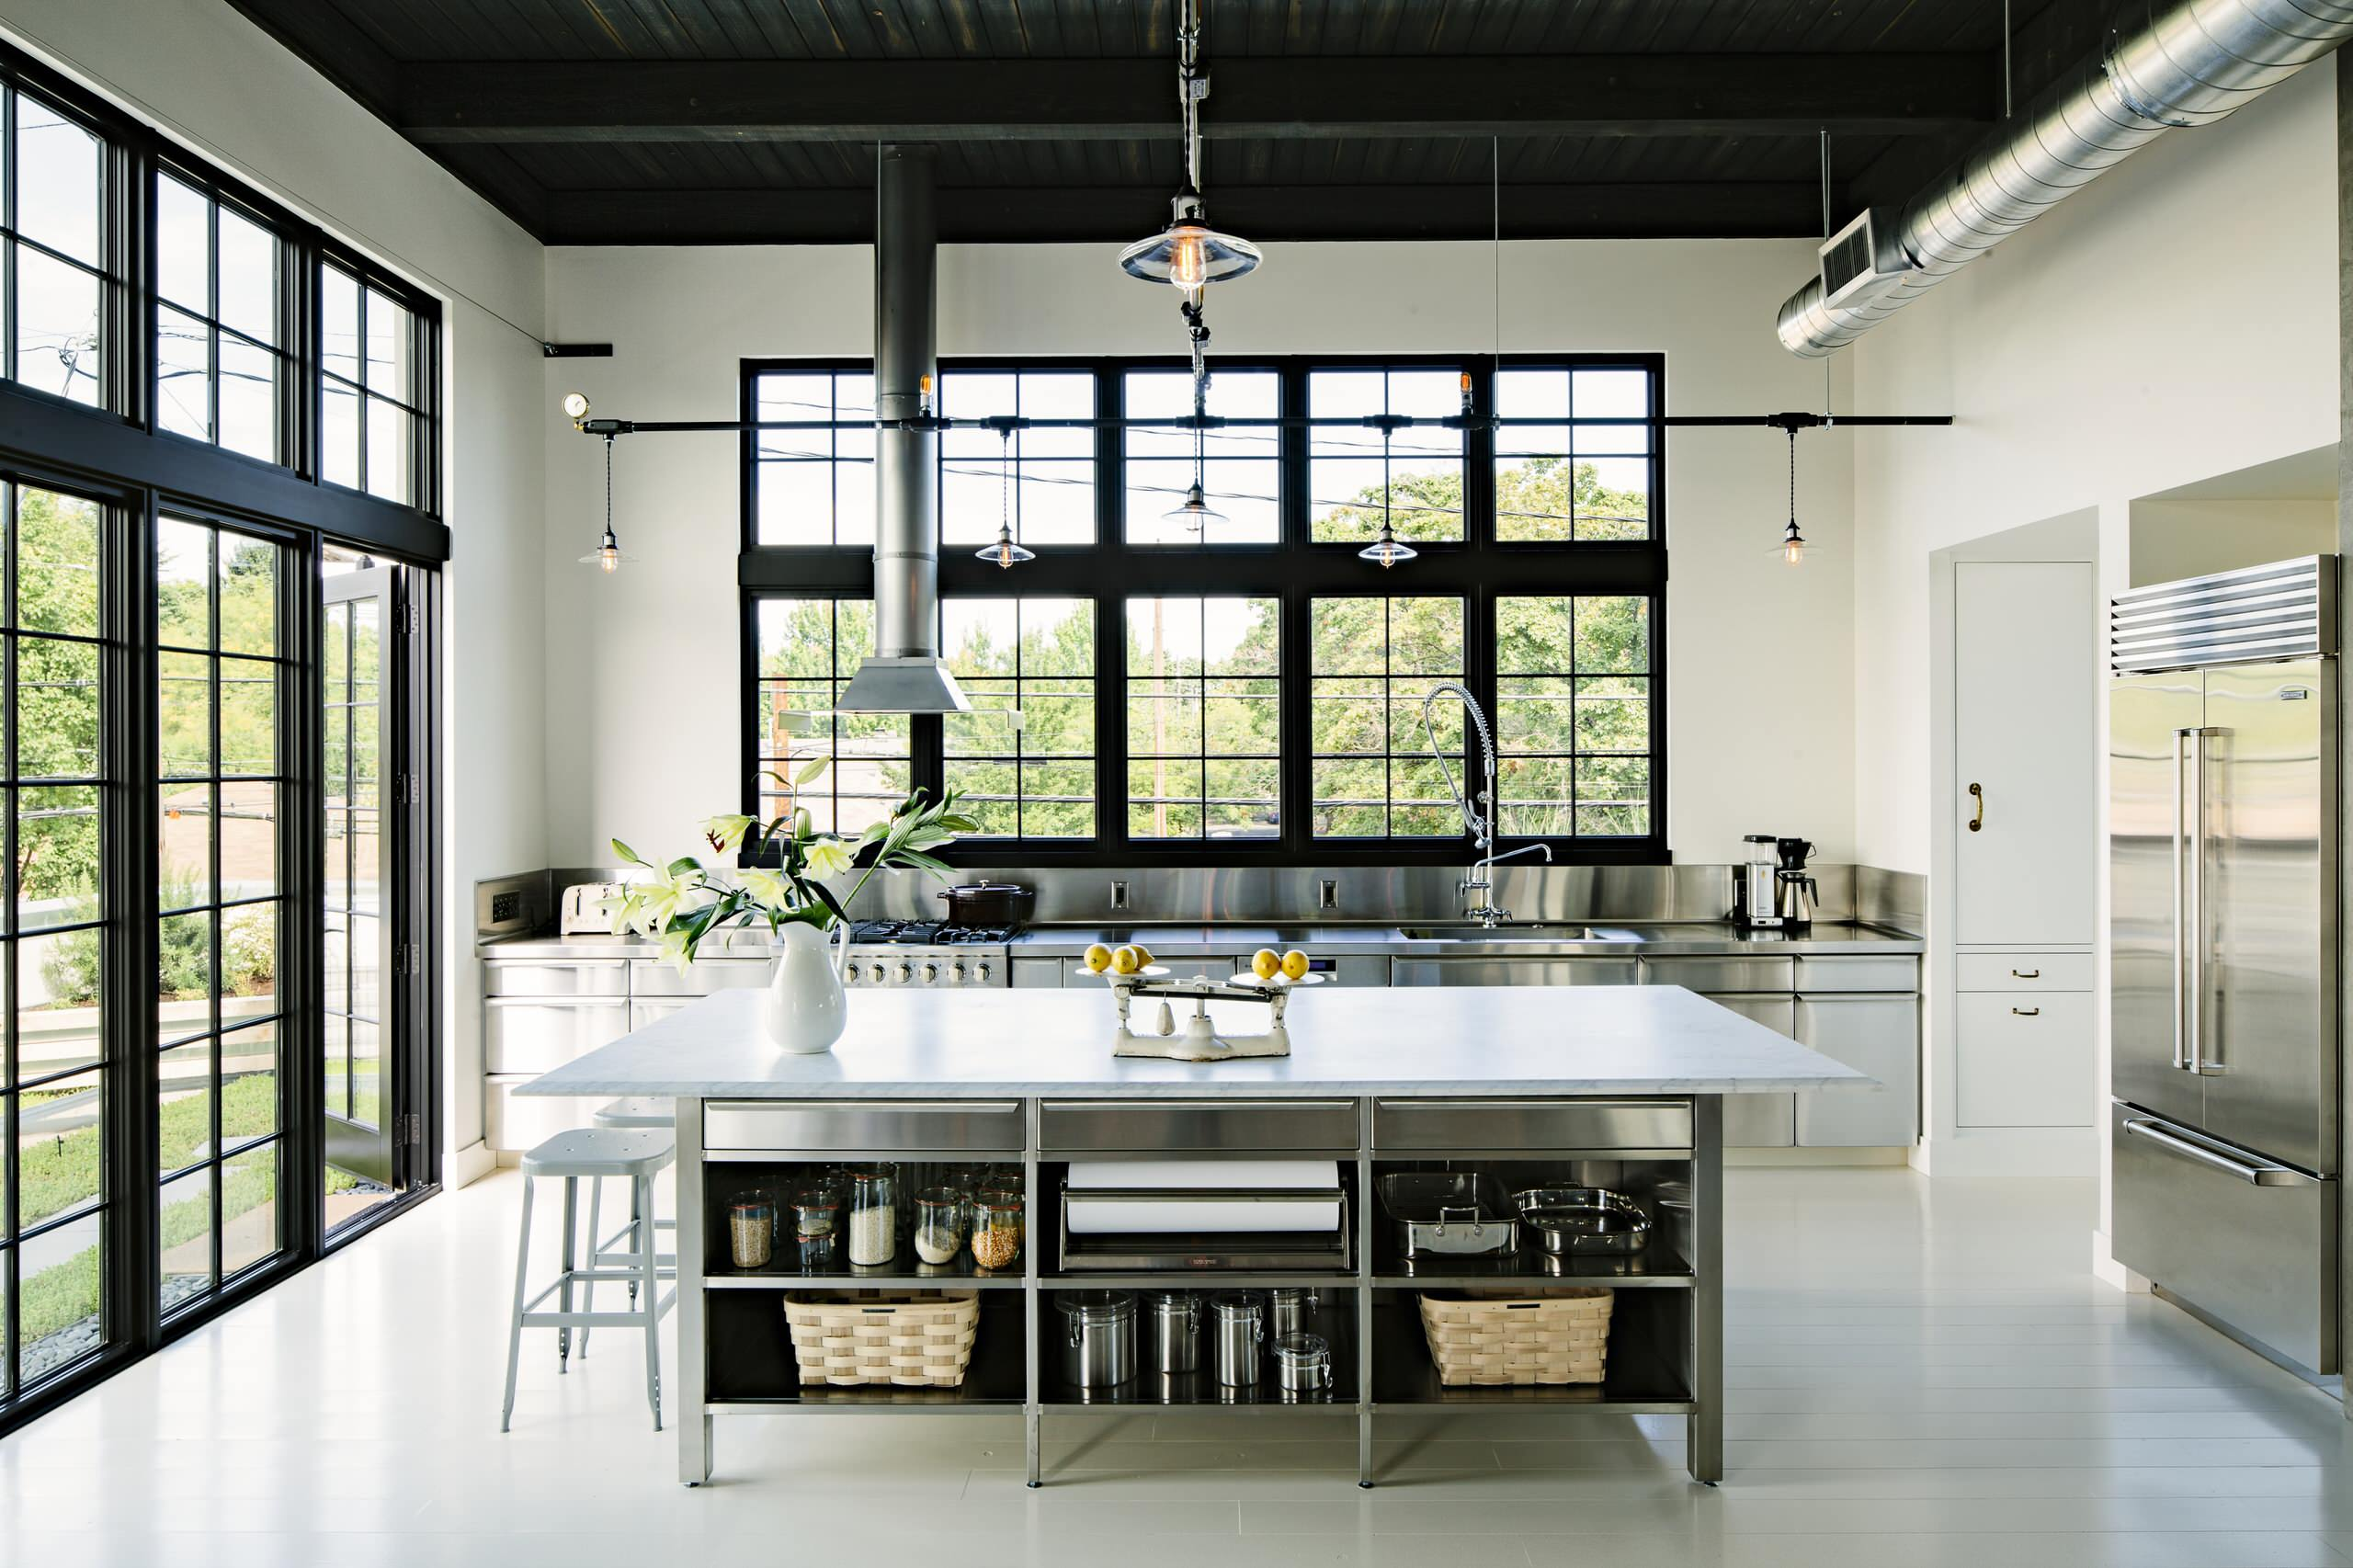 10 Beautiful Industrial Kitchen Pictures & Ideas - January, 10